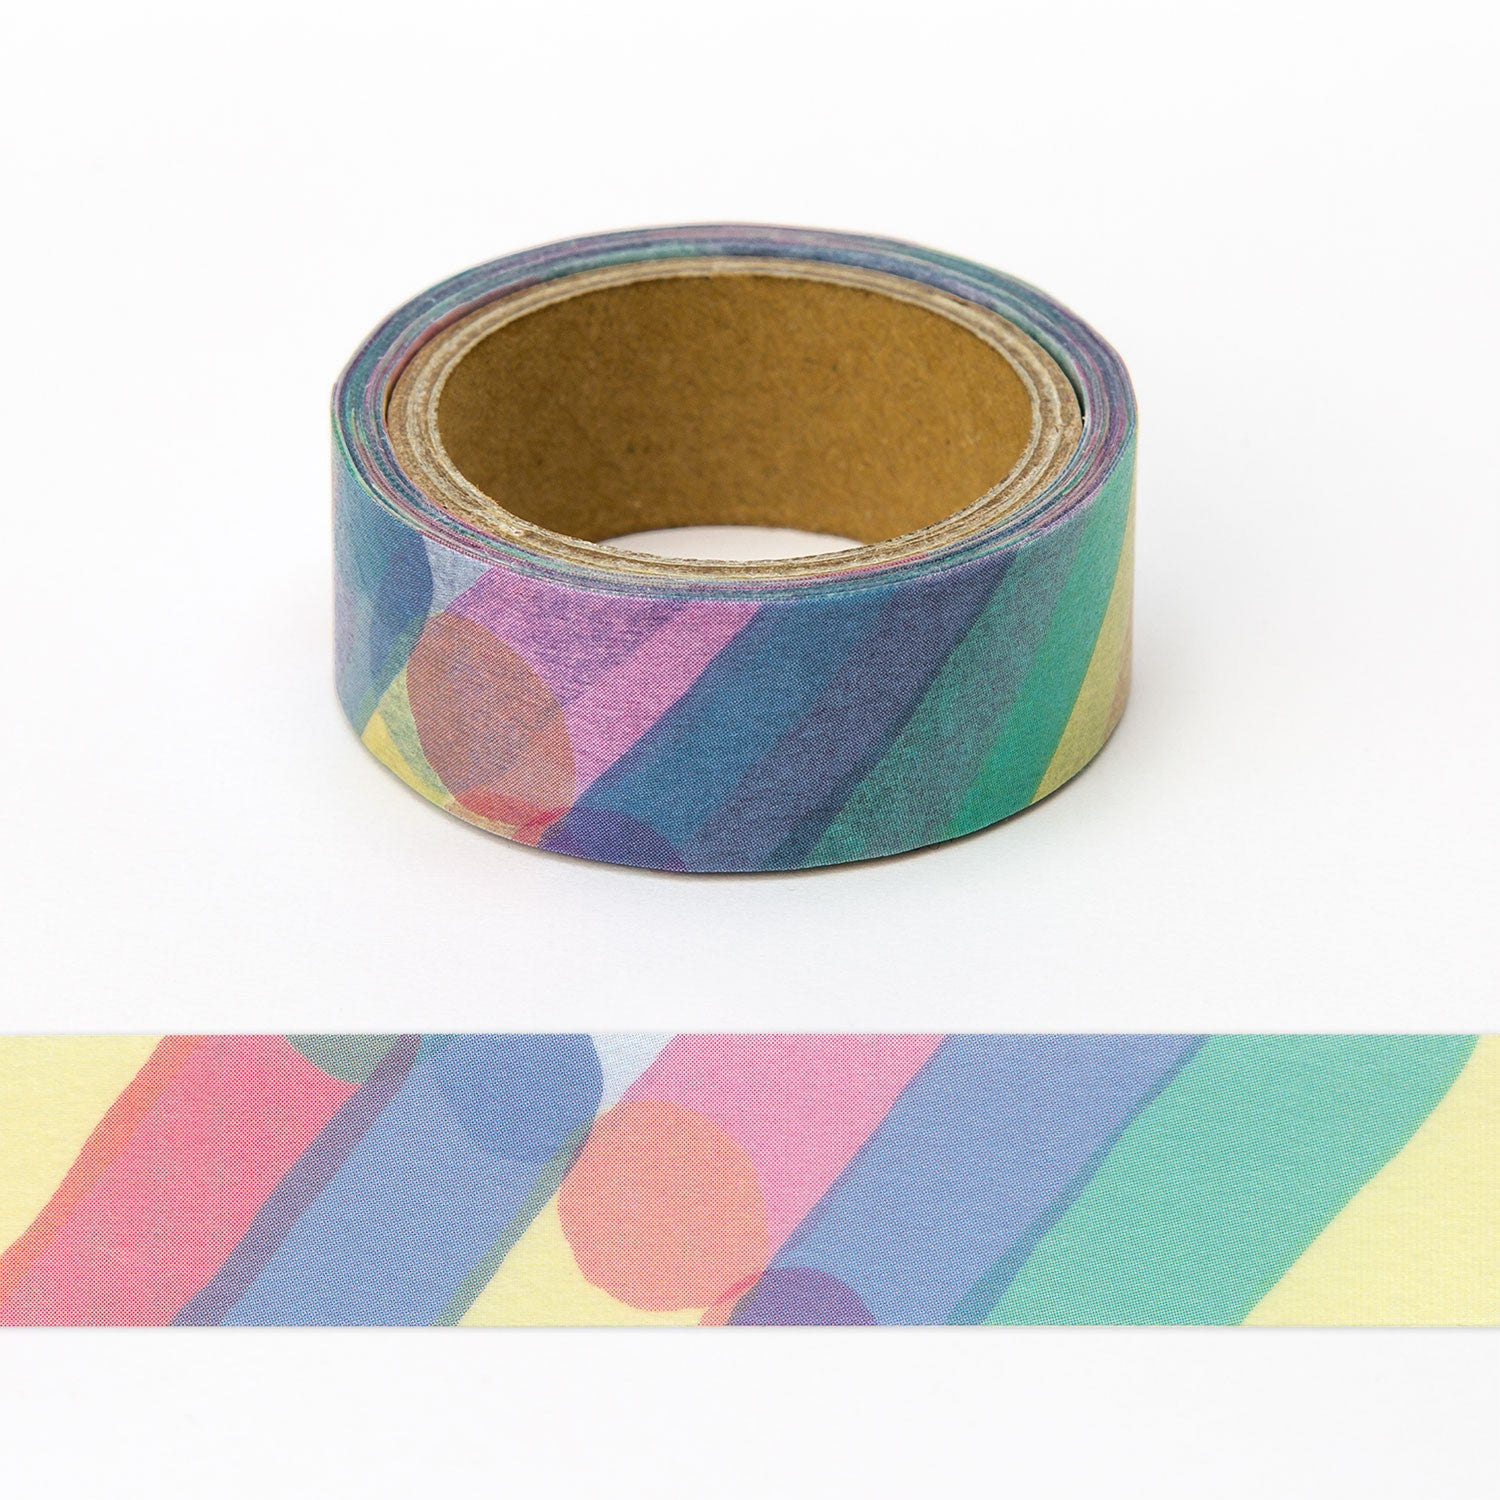 AIUEO Washi Tapes - Juice